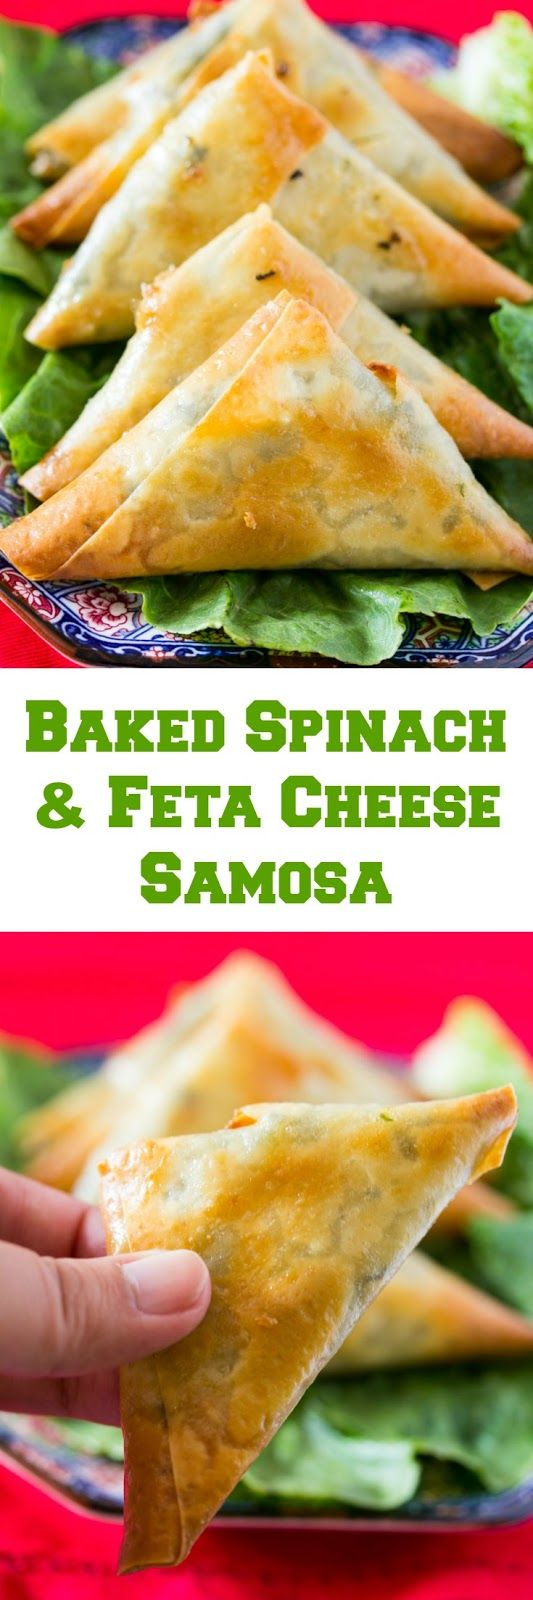 73439 best best of food group board images on pinterest On spinach and cheese samosa recipe